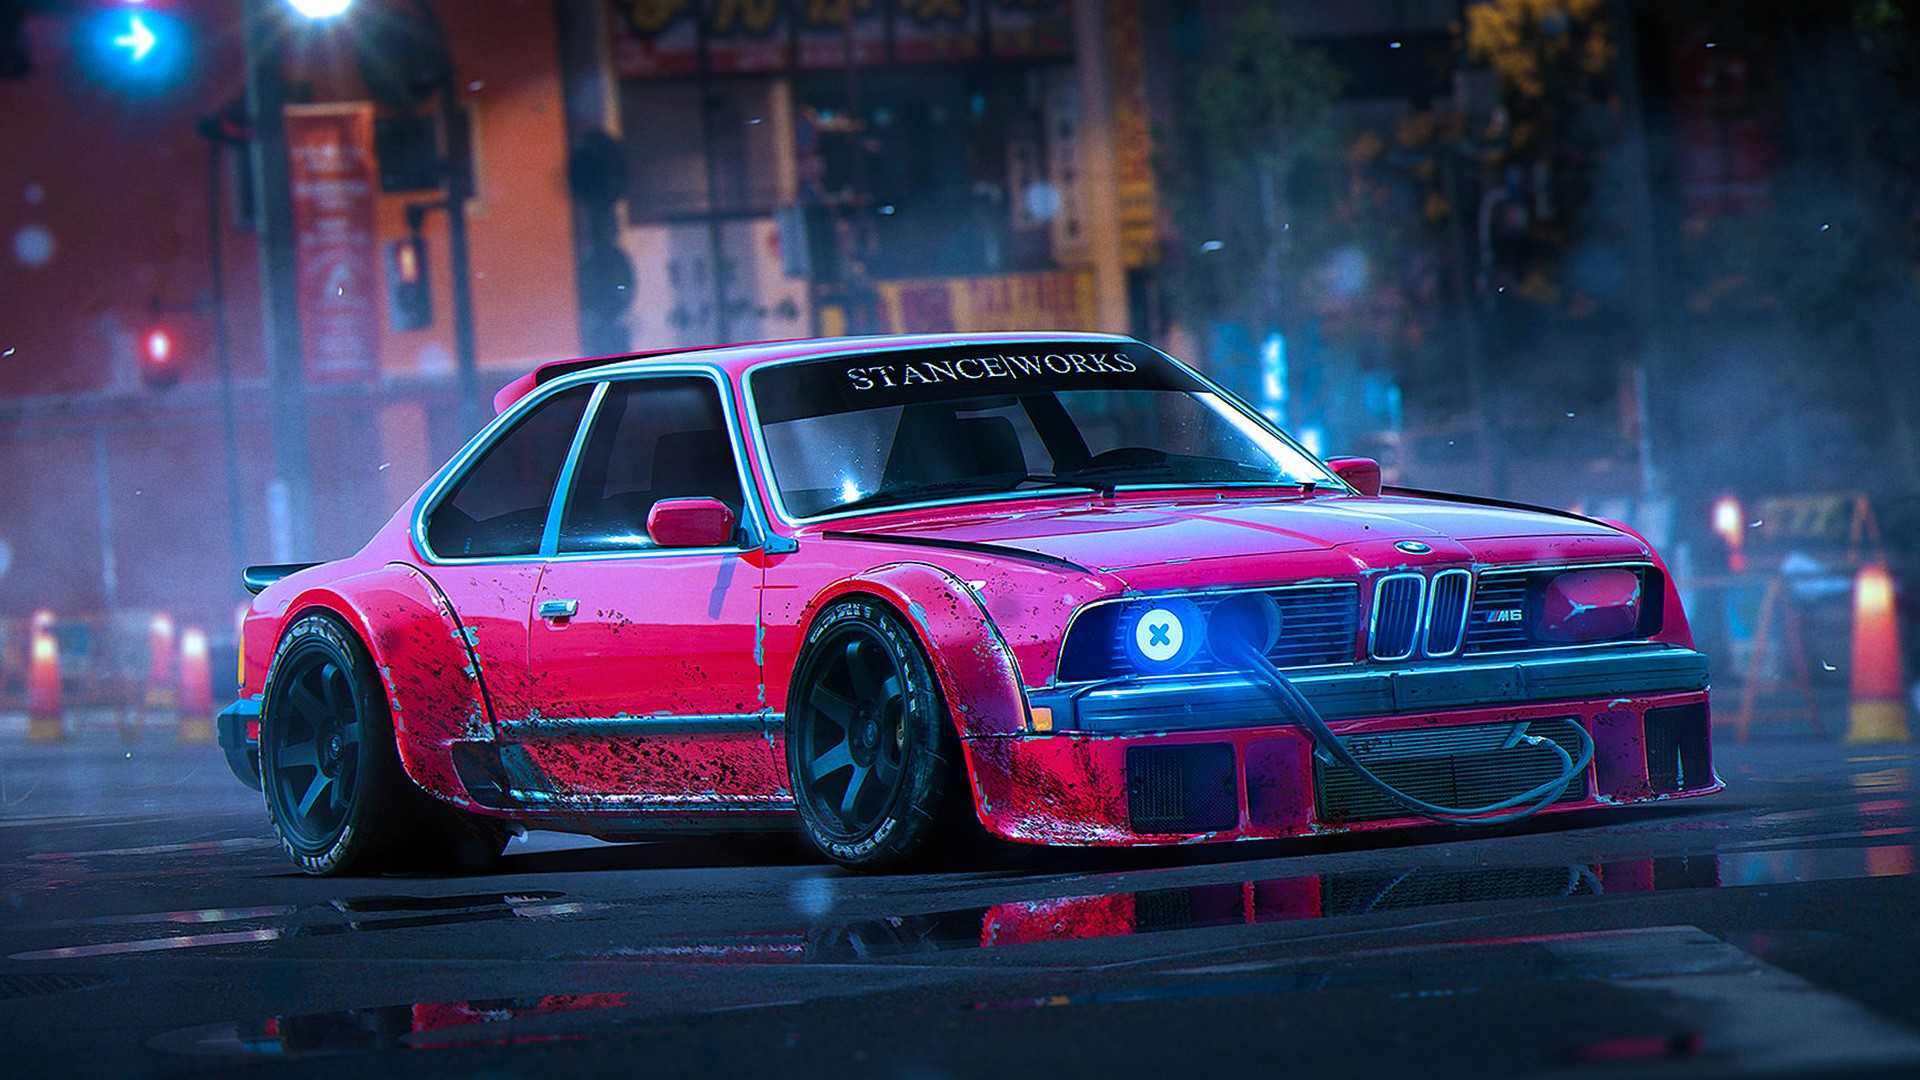 Full Hd Car Wallpapers 1080p Bmw Desktop Wallpaper Red Bmw Old Car From Video Game Hd